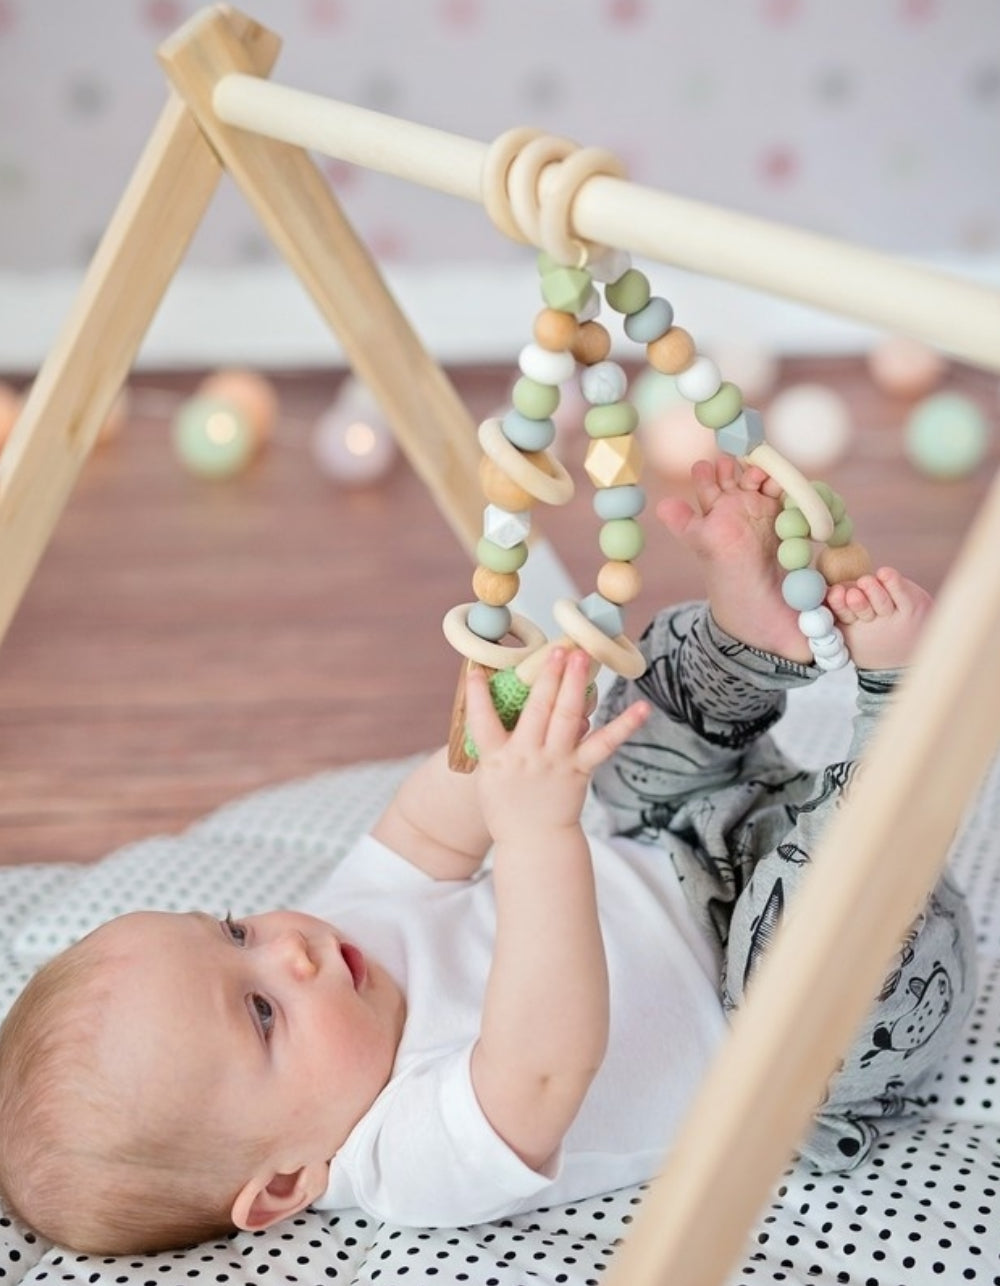 earthly baby gym toys